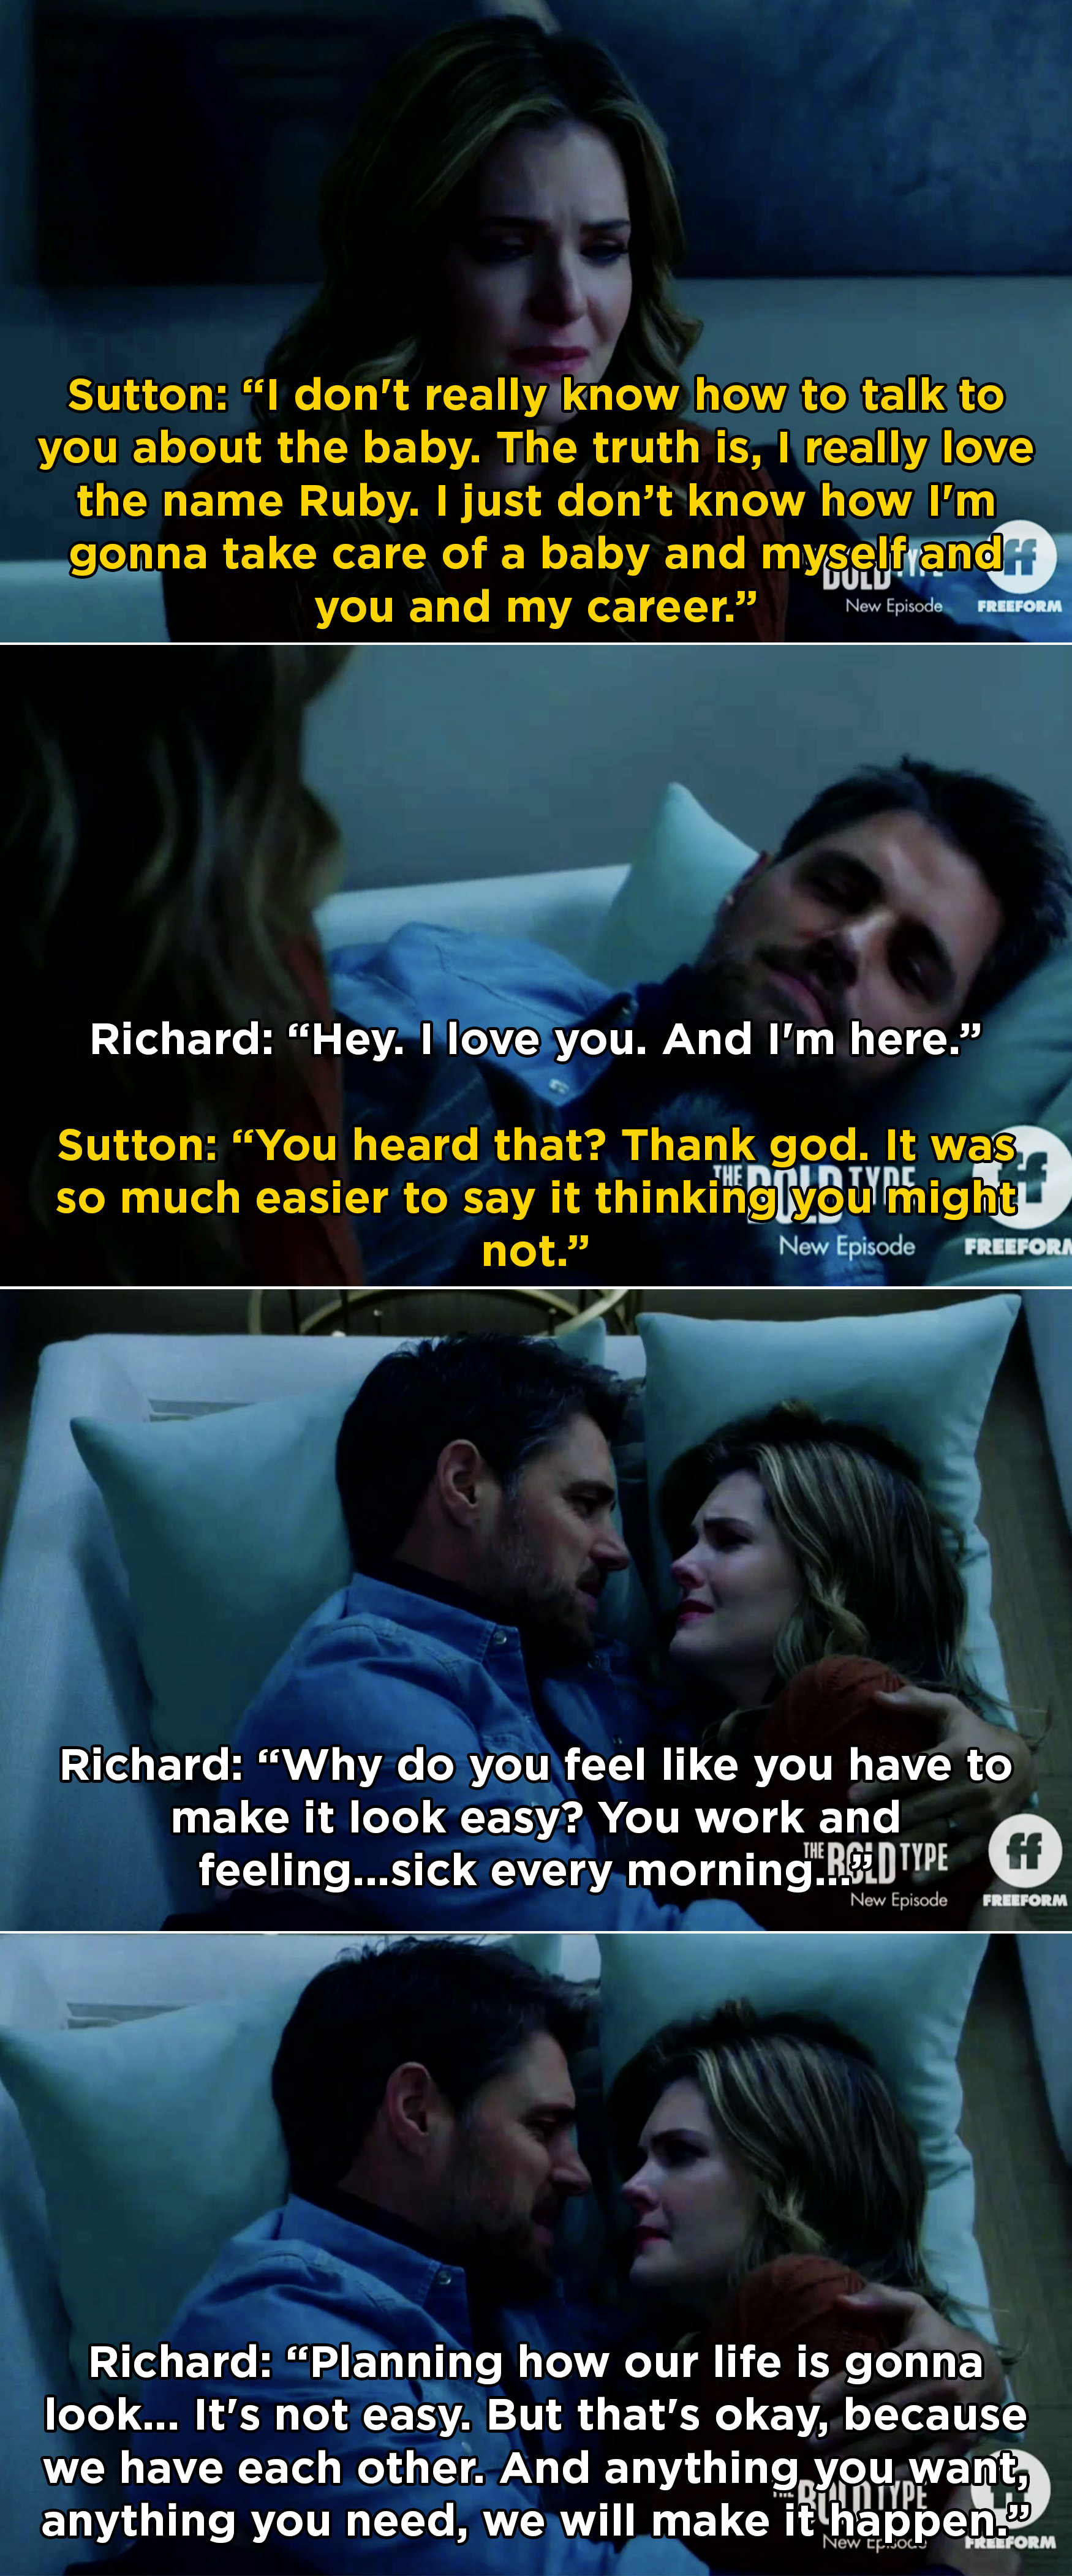 Richard telling Sutton she doesn't have to be perfect at everything and he will be here to help whenever she needs it